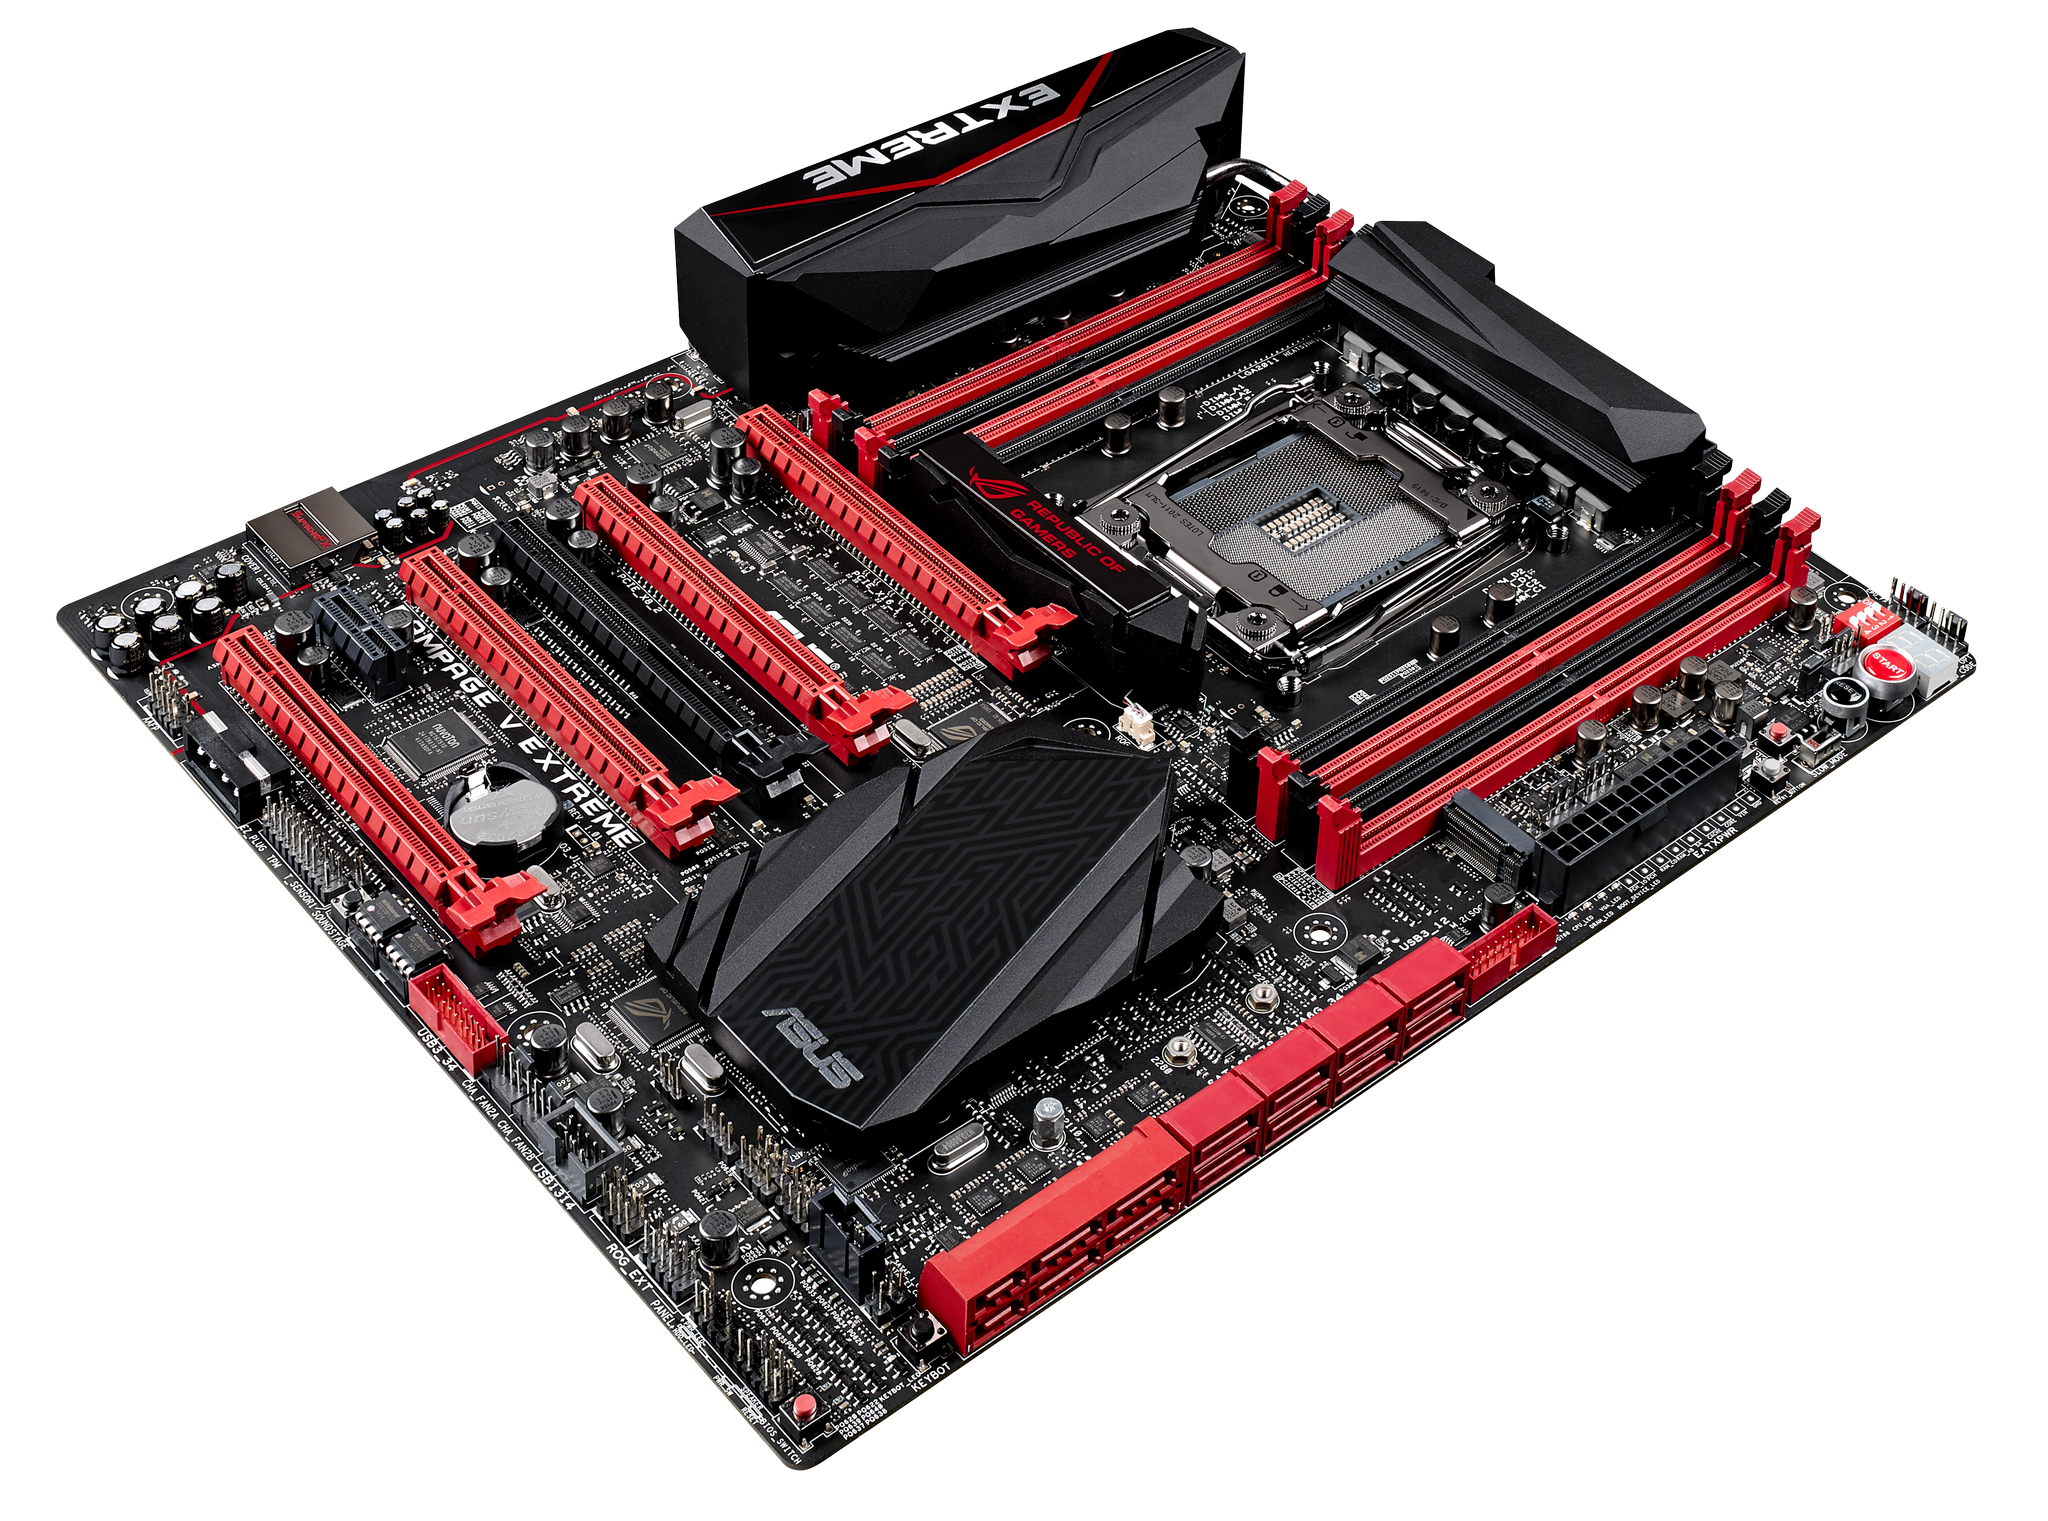 Asus Maximus V Extreme ROG Connect Plus Last